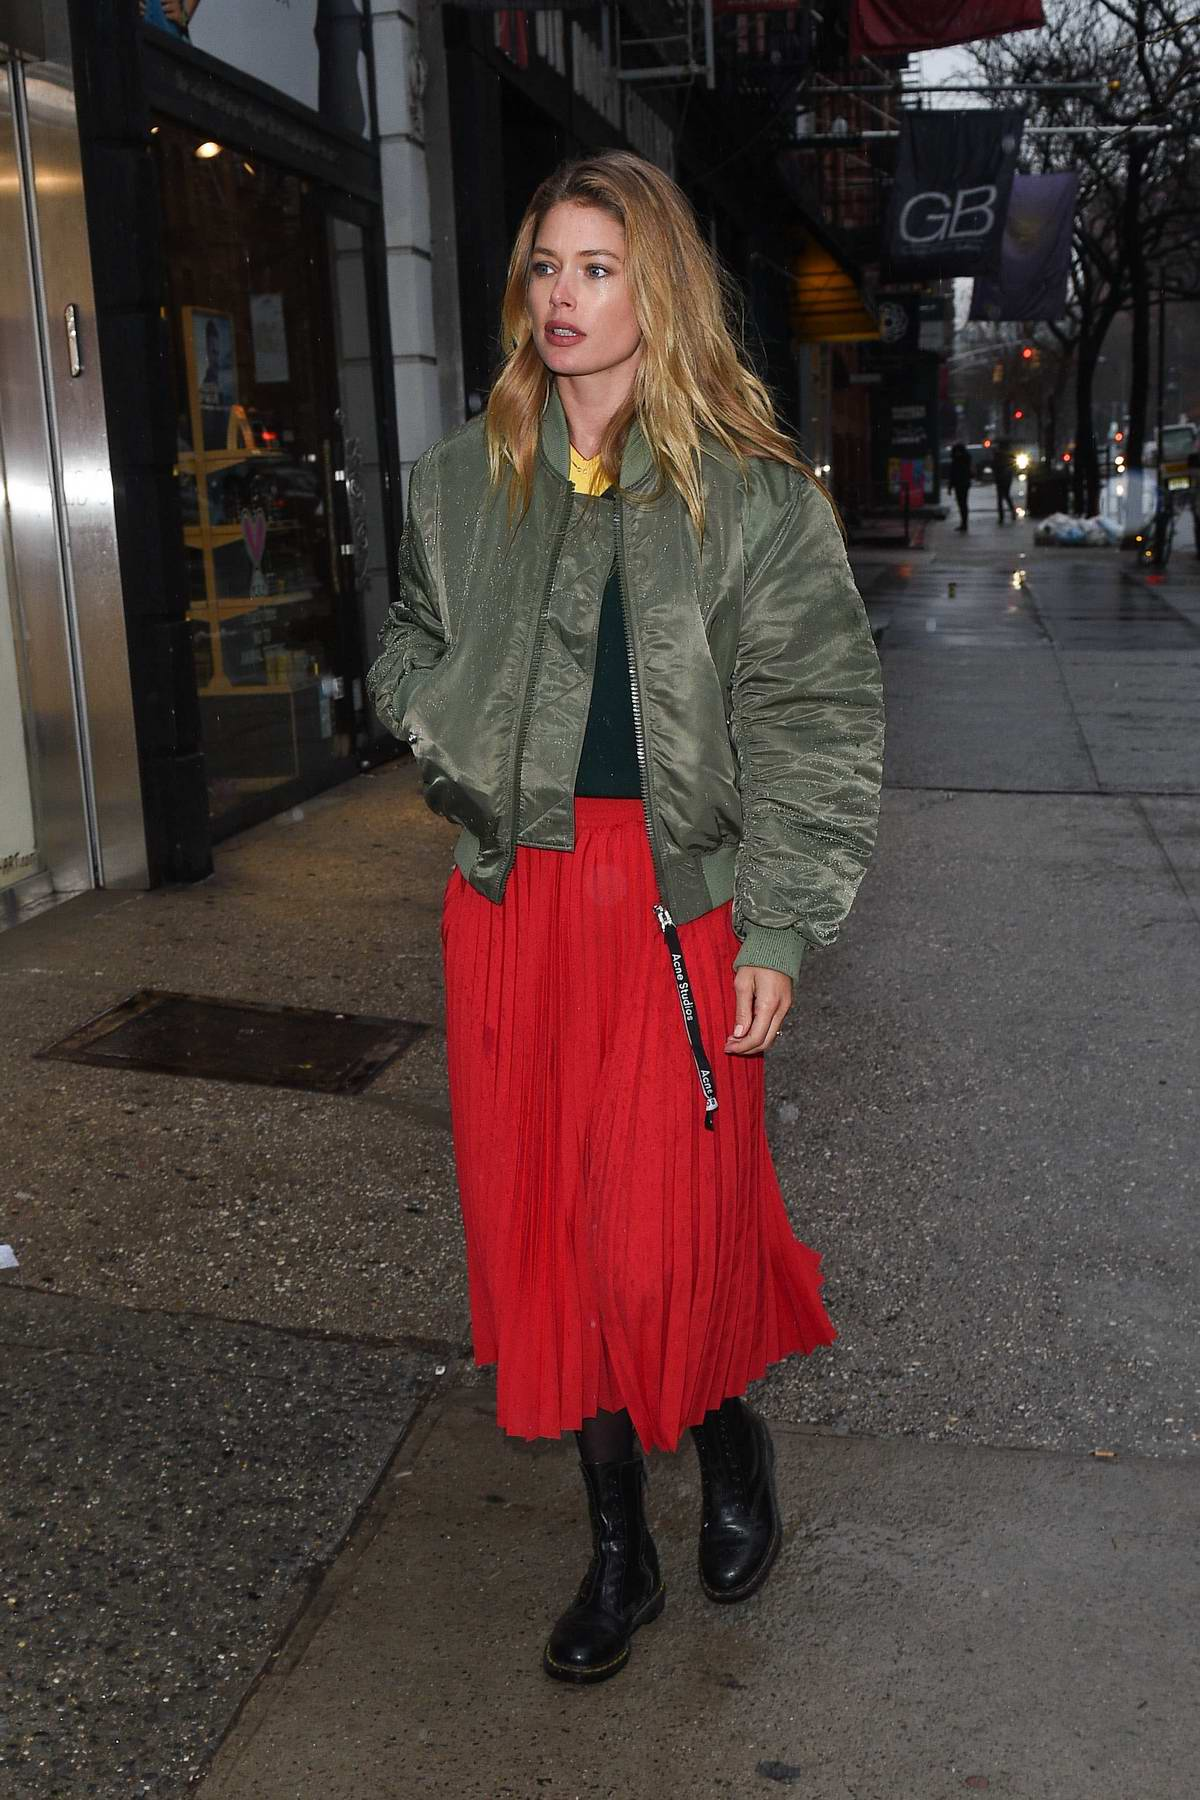 Doutzen Kroes arrives at a hair salon wearing a green jacket and red long skirt in Soho, New York